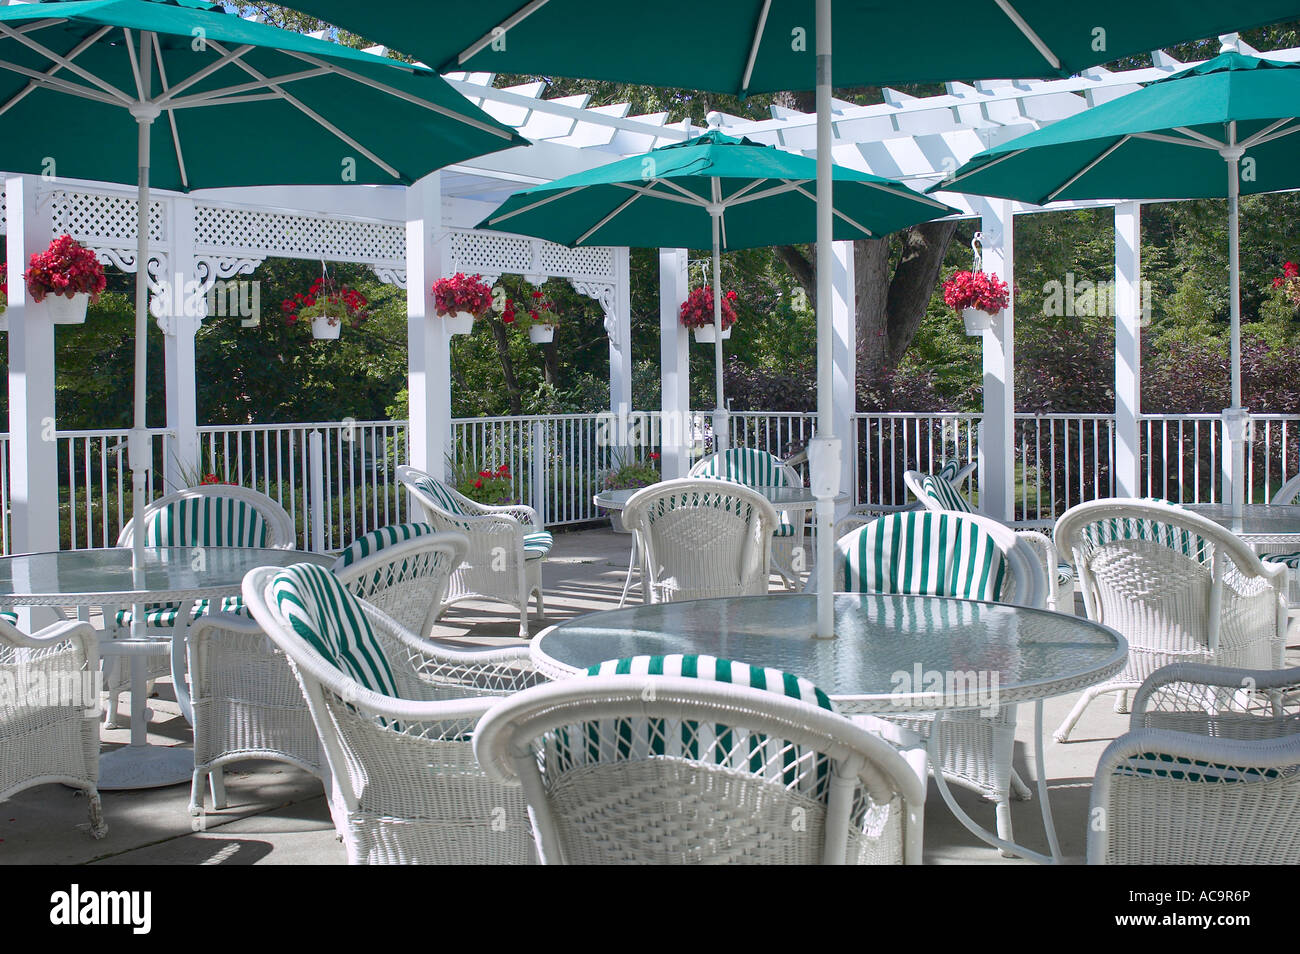 Restaurant Patio Deck With Chairs Tables Umbrellas Outside On A Summer Day,  USA